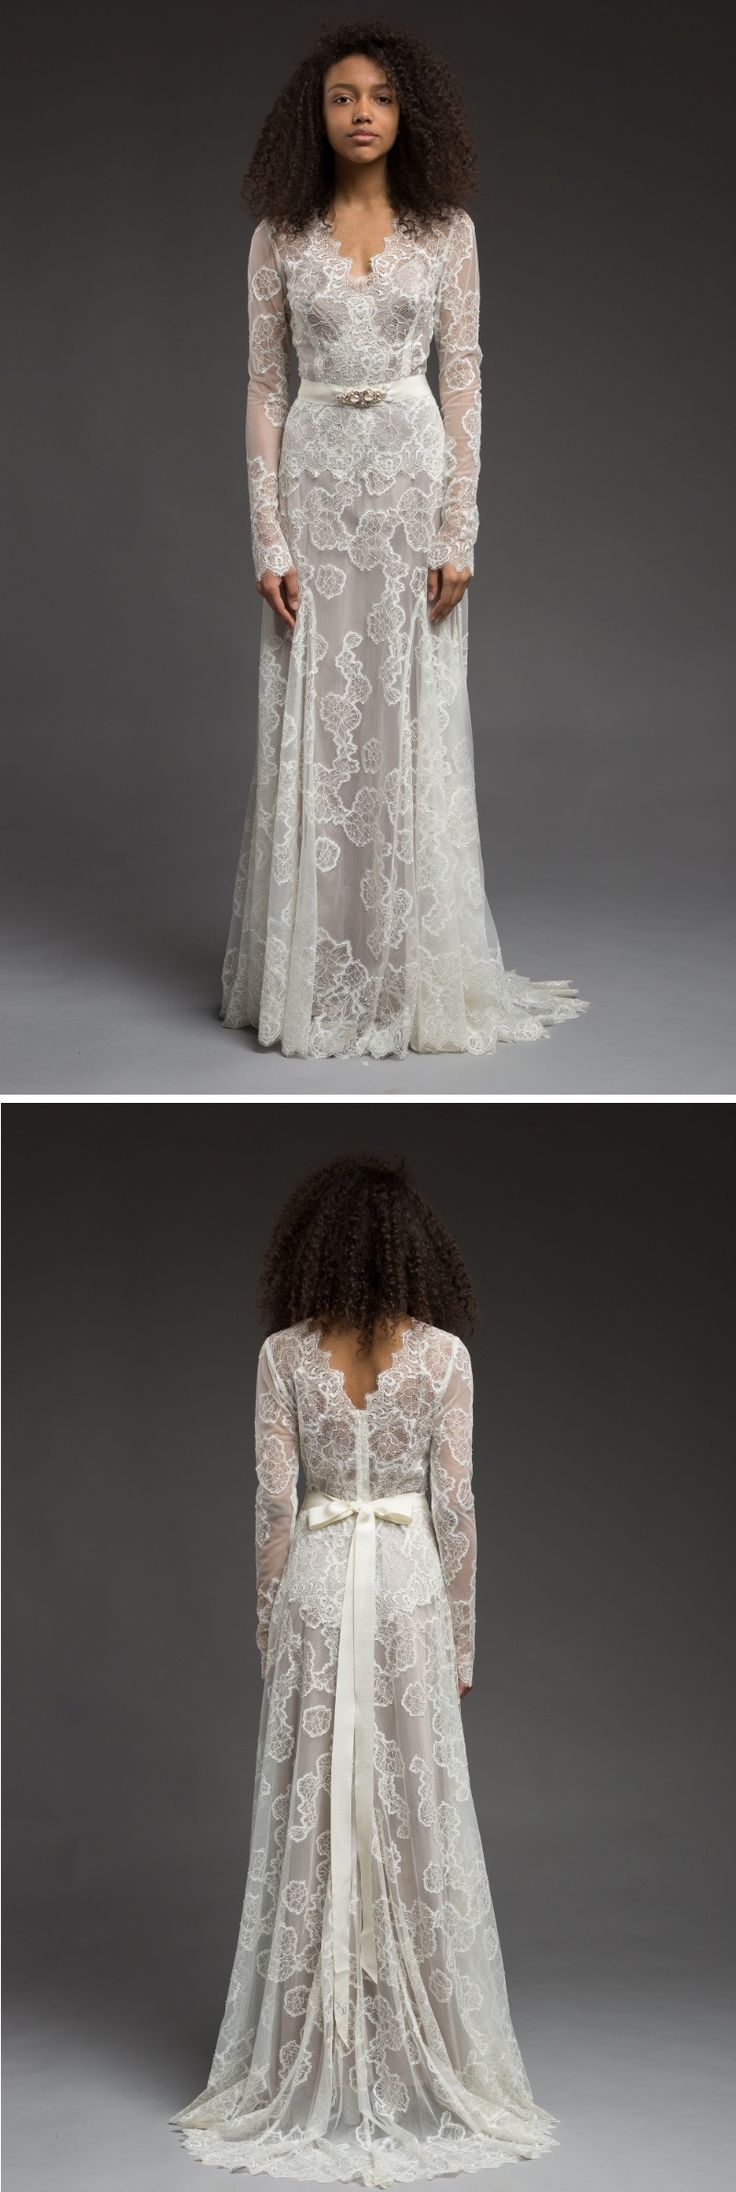 Delicate and feminine long sleeve lace wedding dress || Katya Katya Shehurina